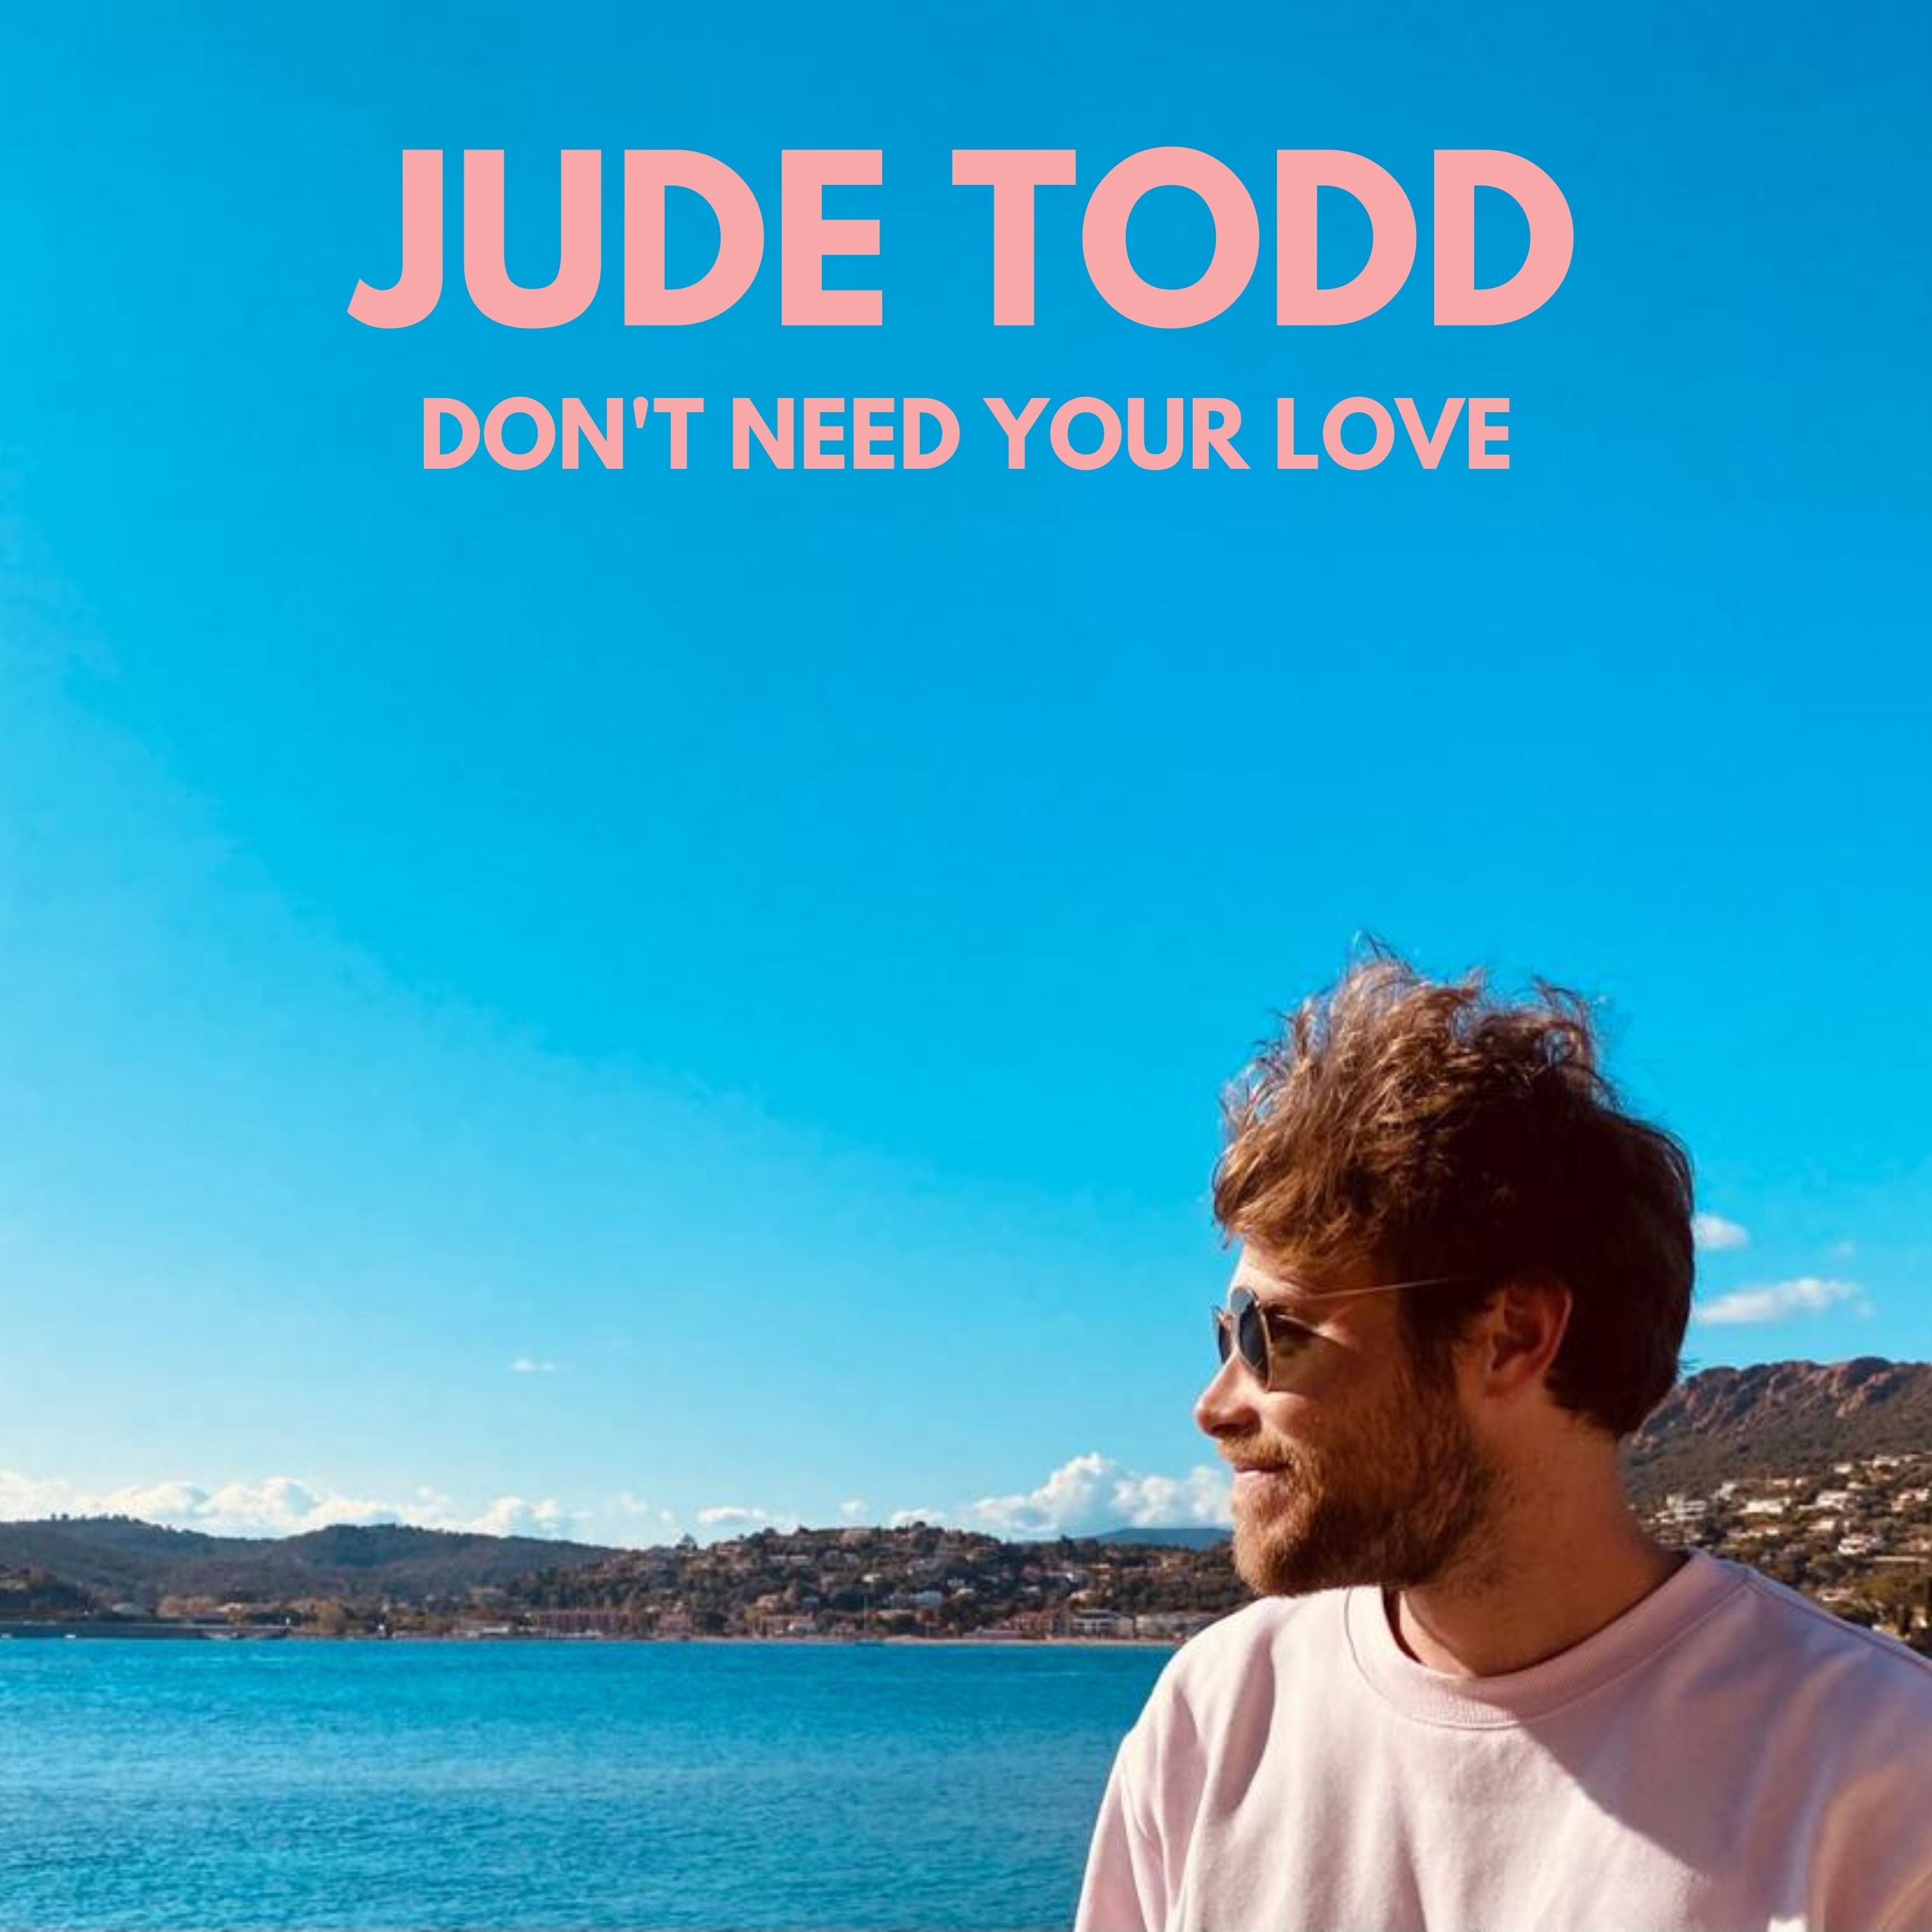 Jude Todd - Don't Need Your Love (Official Video)